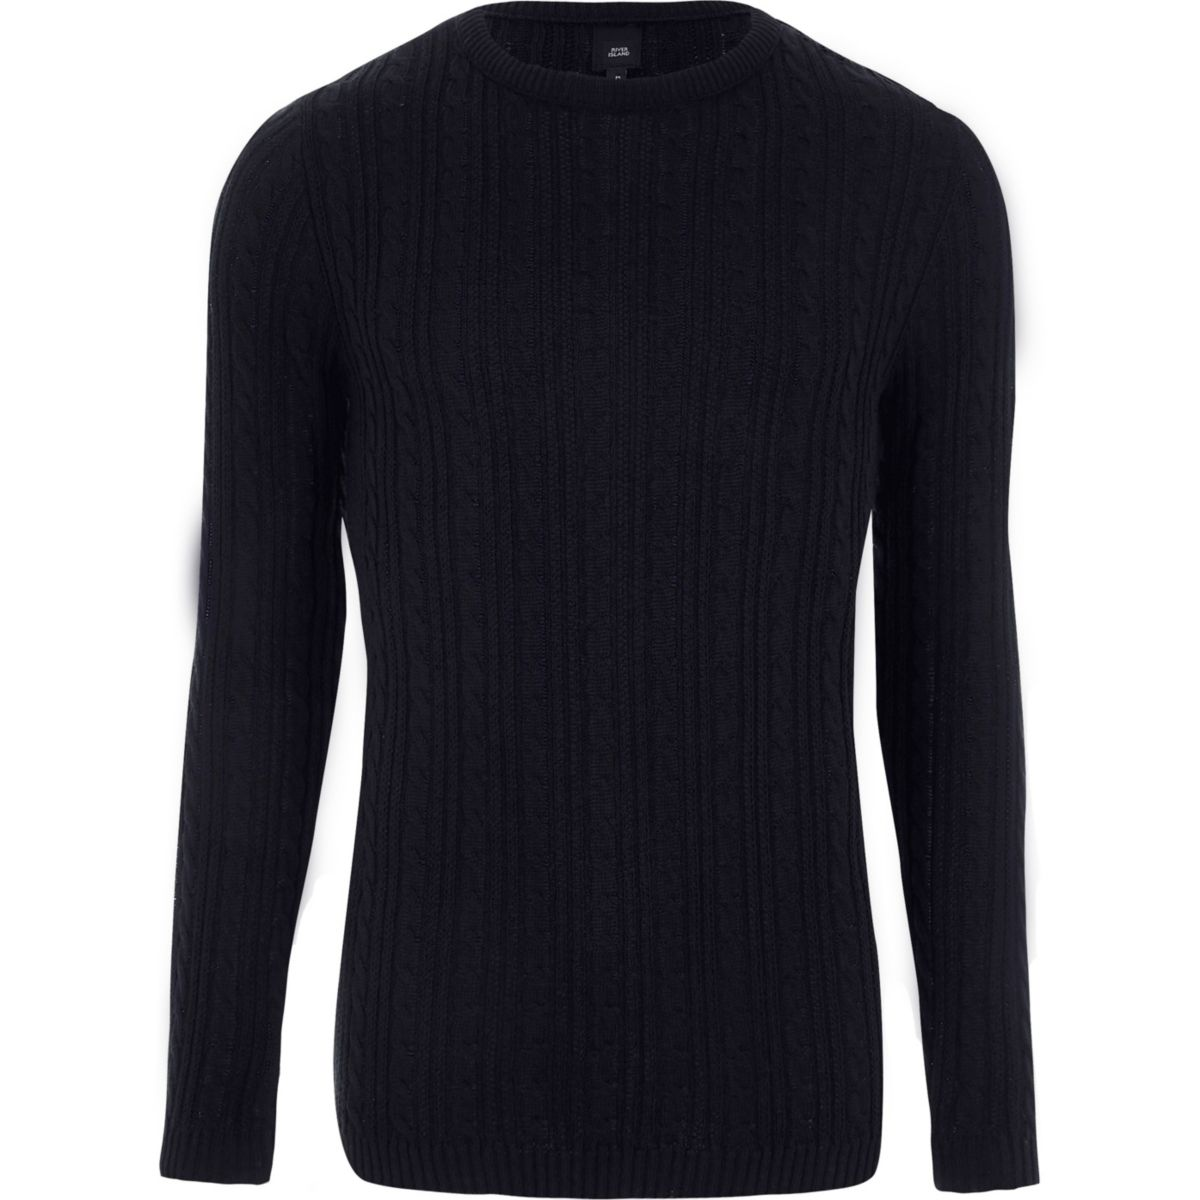 Navy cable knit Muscle fit jumper